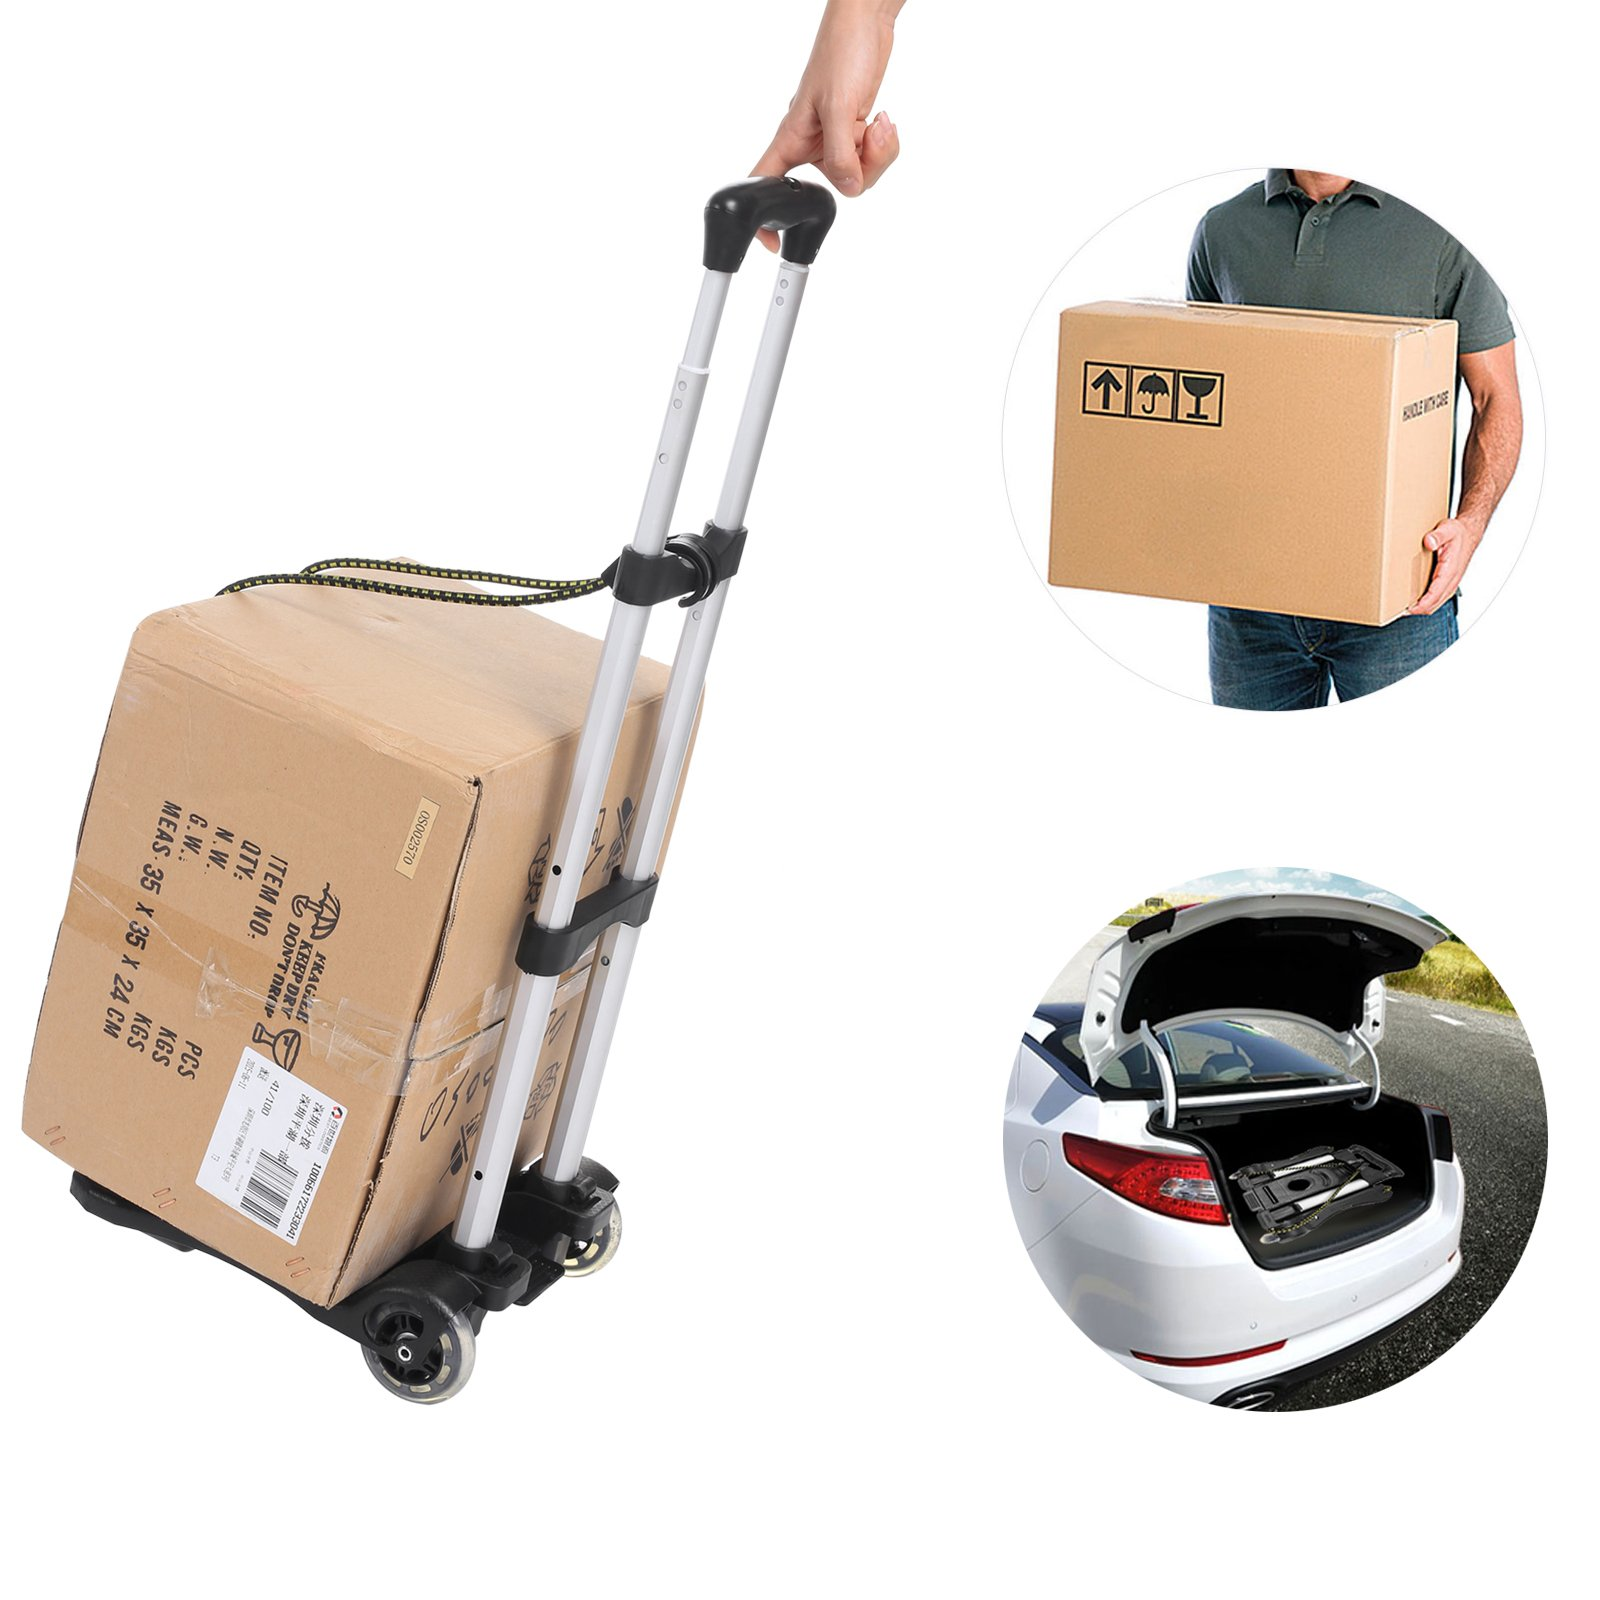 Anfan Folding Luggage Cart Portable Personal Moving Hand Truck 2 Wheels Foldable Platform Truck Shopping Cart - Support 80lbs Capacity by Anfan (Image #7)